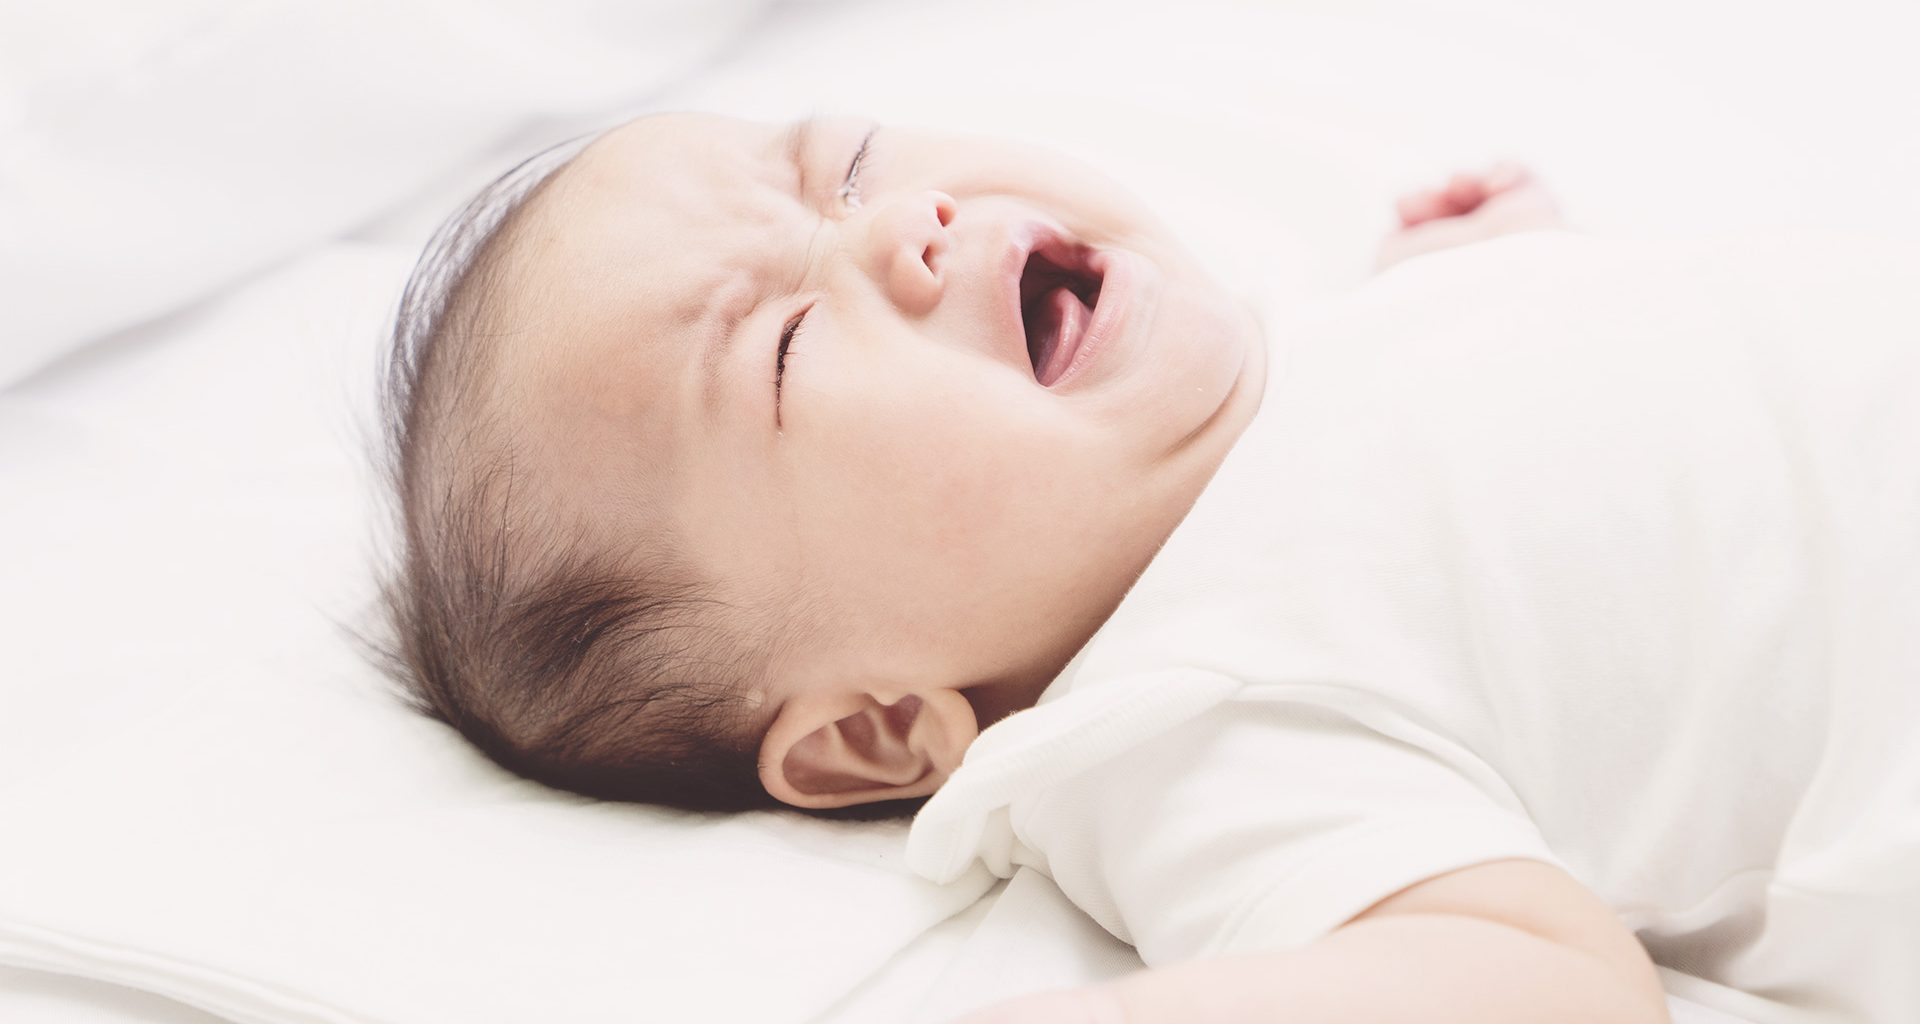 why does my baby wake up crying?